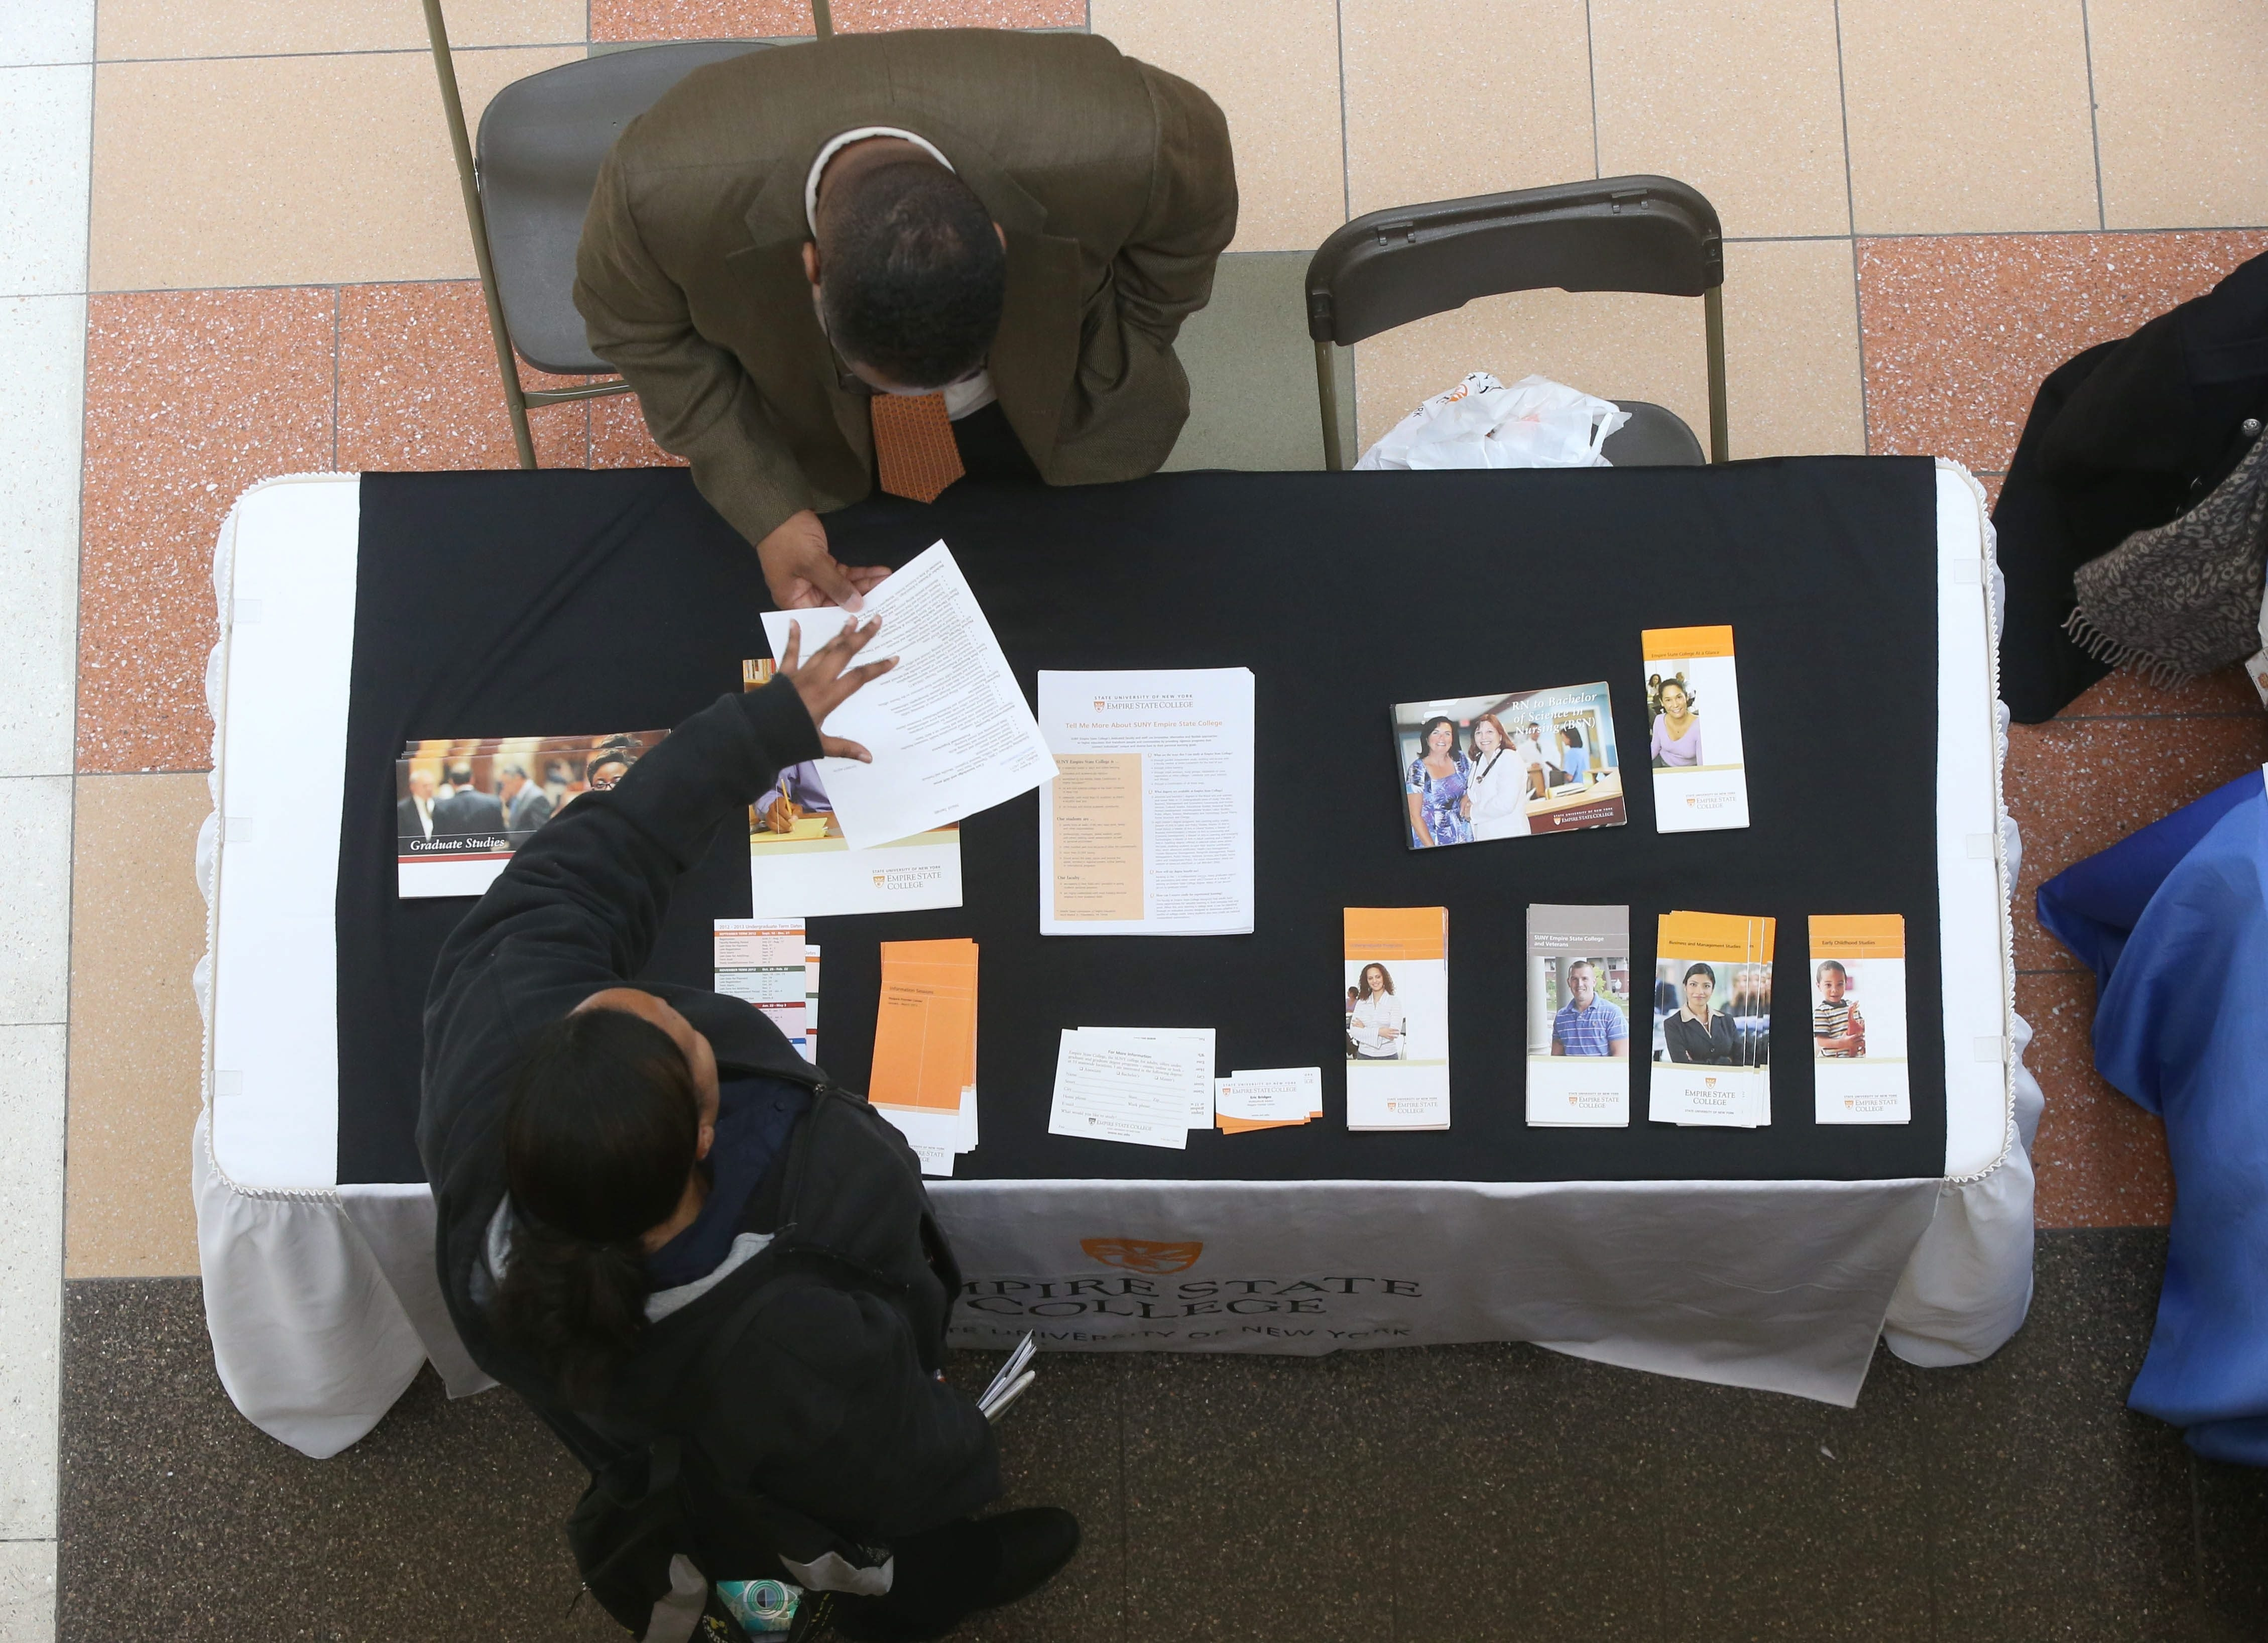 """Job fairs such as those sponsored by Cheektowaga Chamber of Commerce at Walden Galleria have reaped benefits for applicants in region. """"I'm liking what I'm seeing,"""" a state expert says. """"We're growing at a better pace"""" that """"could be sustainable for a long time."""""""